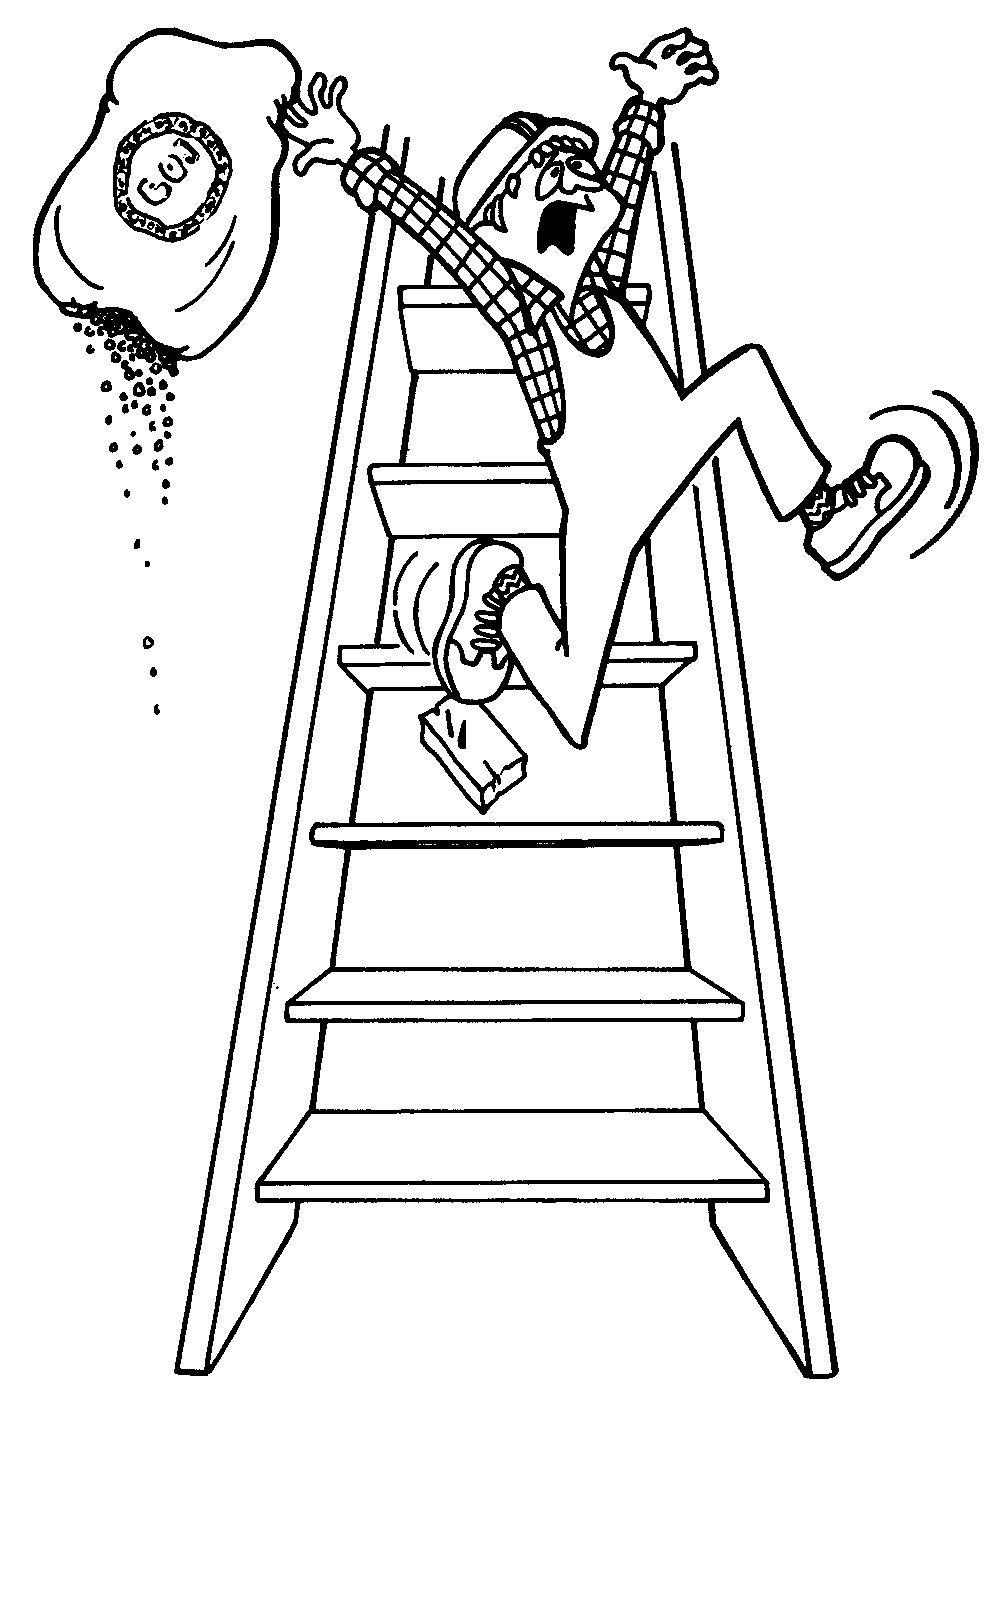 Health & Safety Coloring Pages | Picture For Educational Coloring Pages